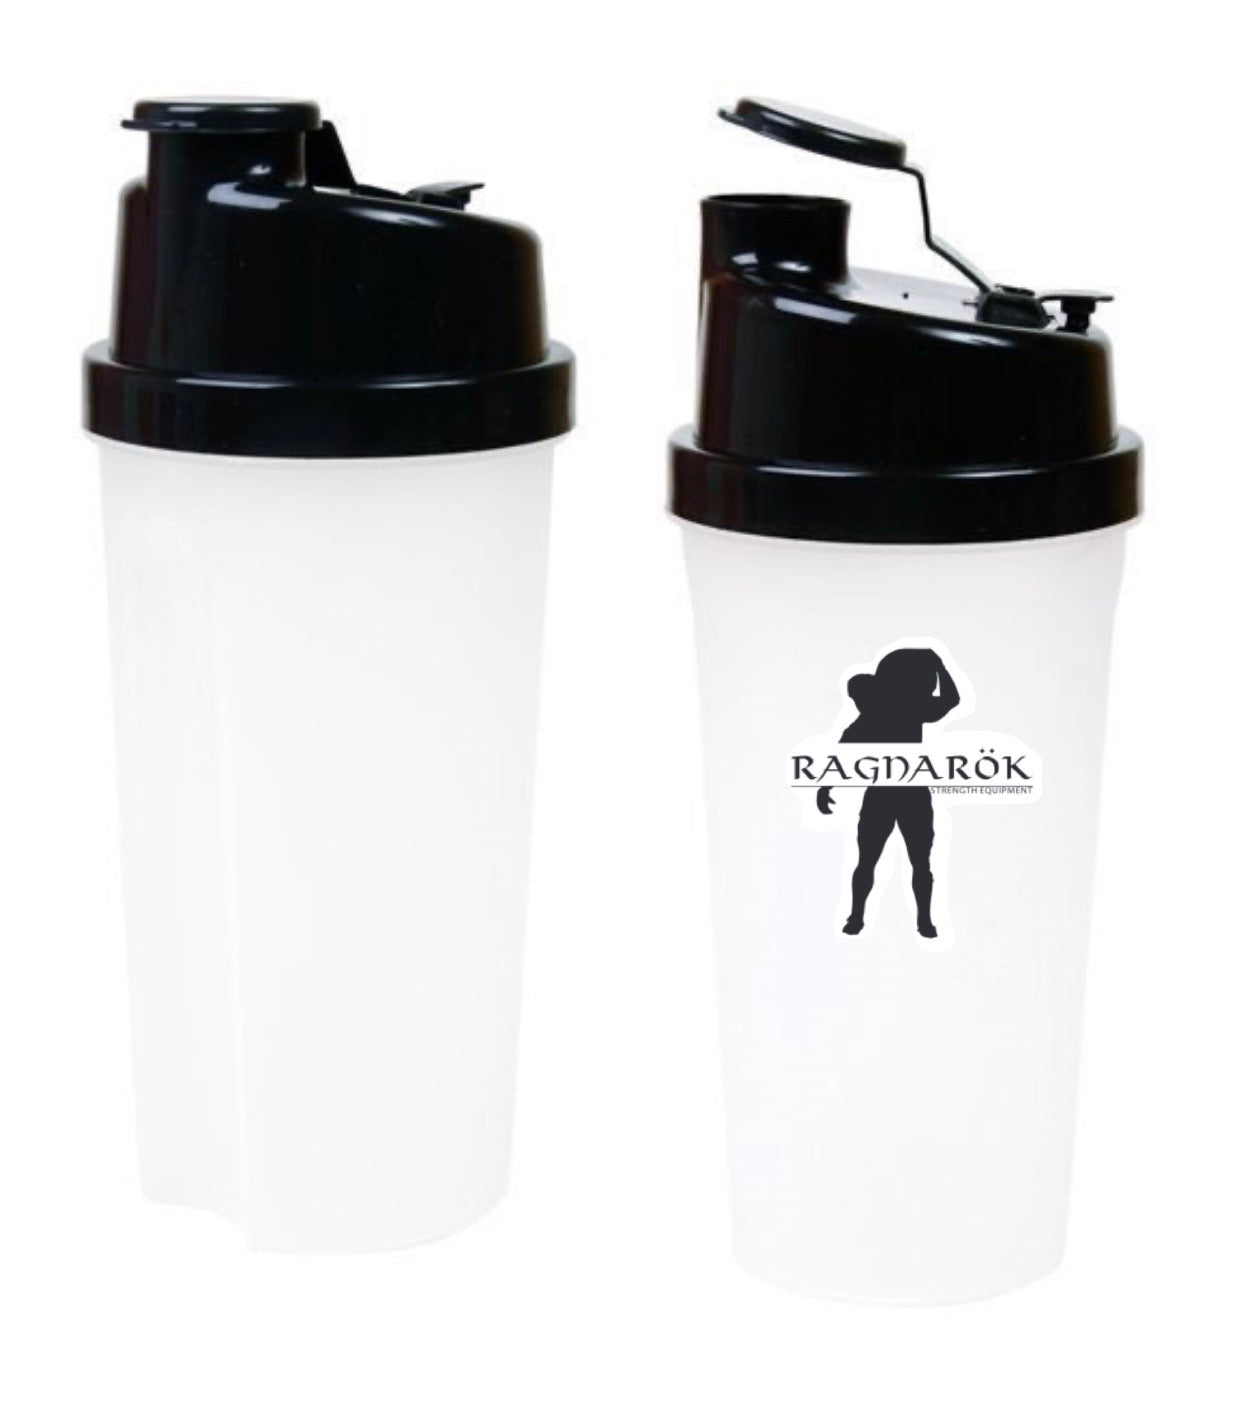 20 oz Ragnarök Shaker Bottle